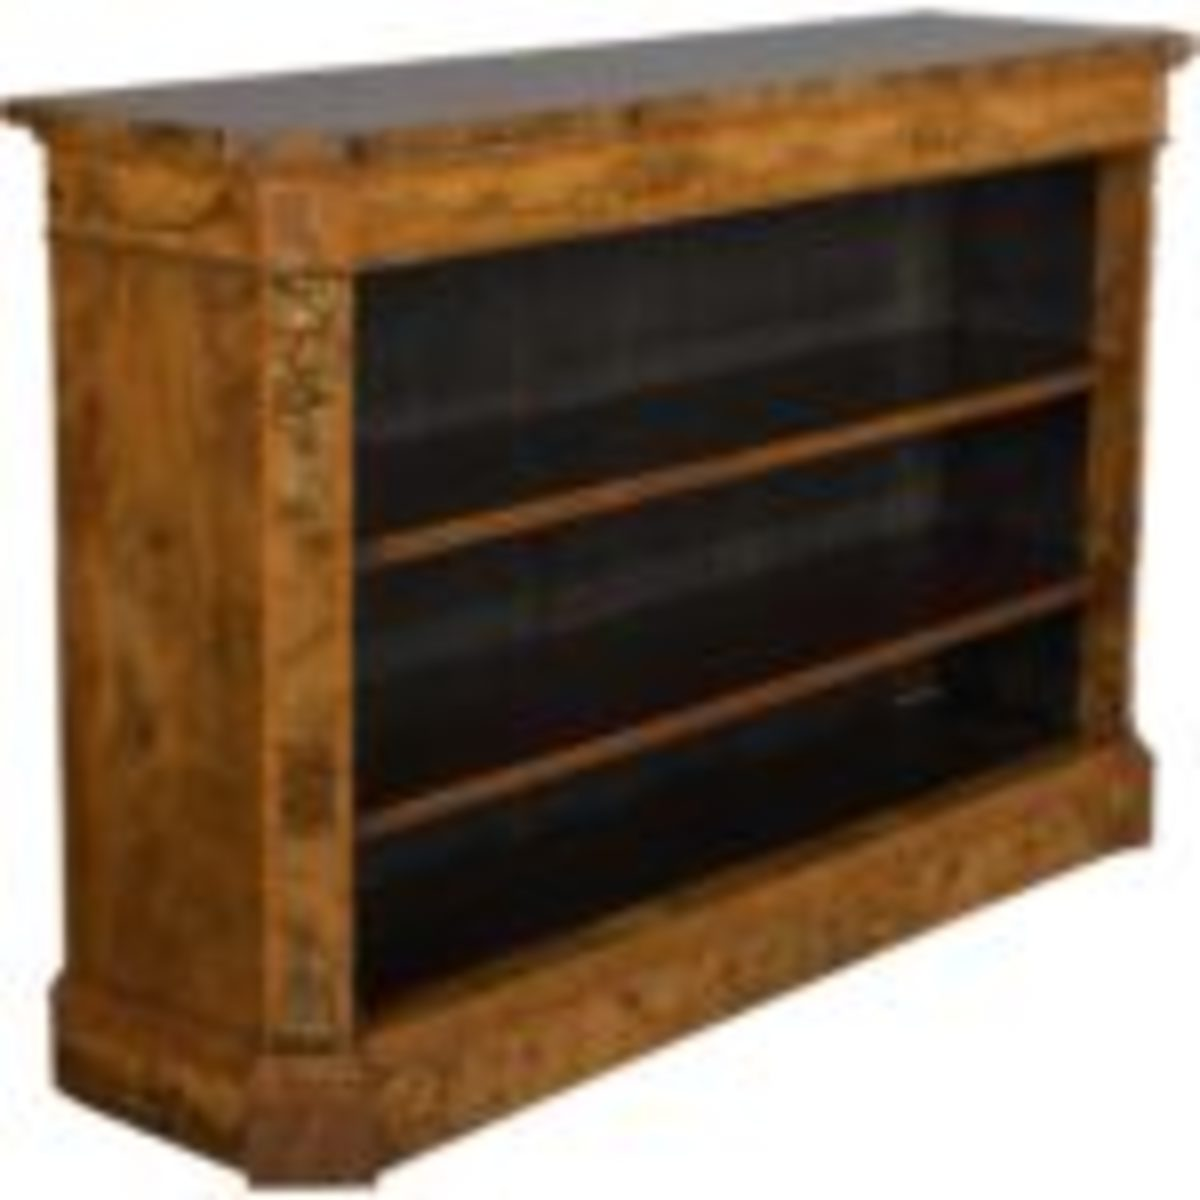 19th century French Restauration bookcase